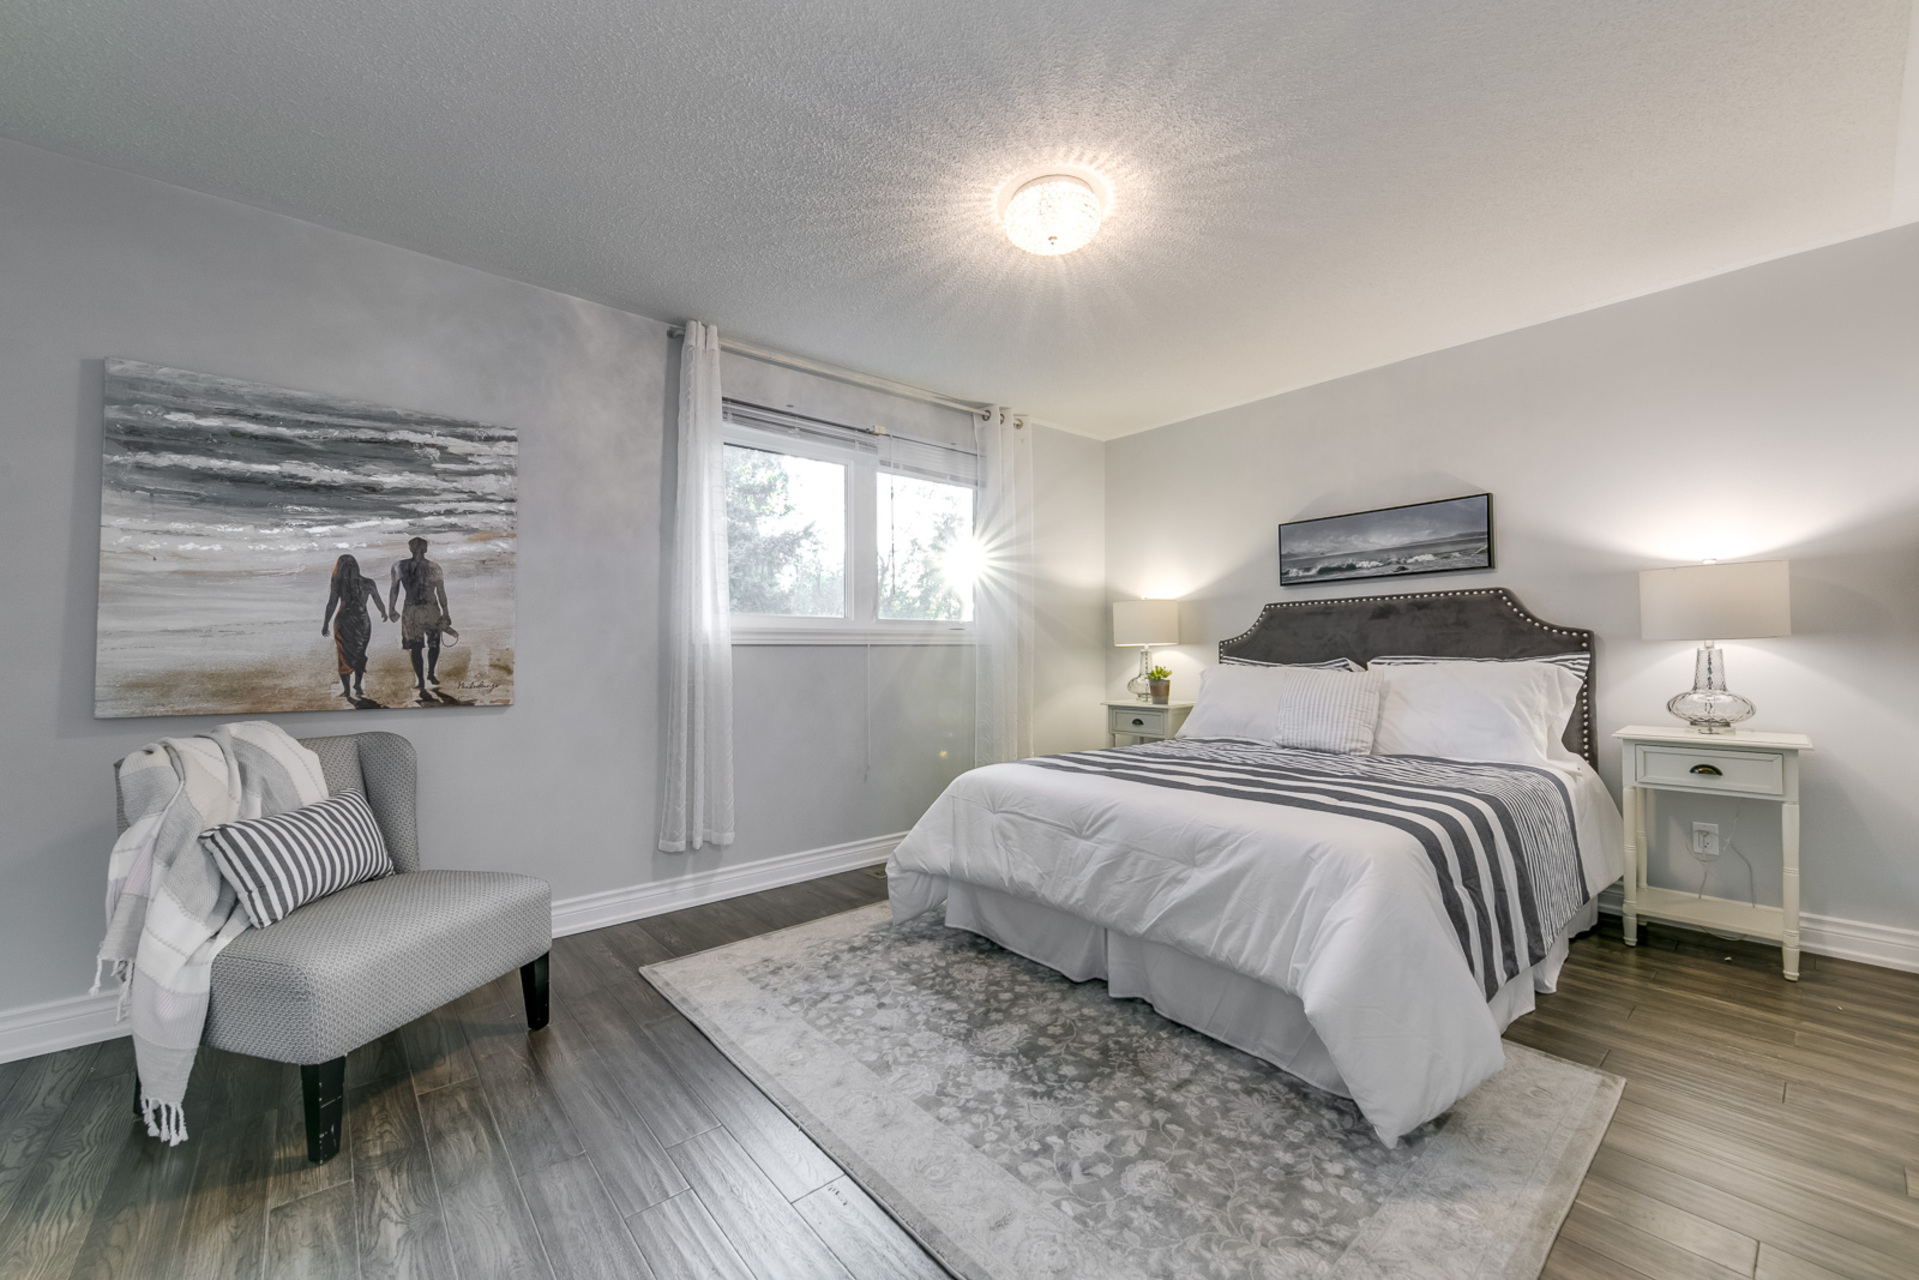 mls-37 at 4246 Wakefield Crescent, Creditview, Mississauga